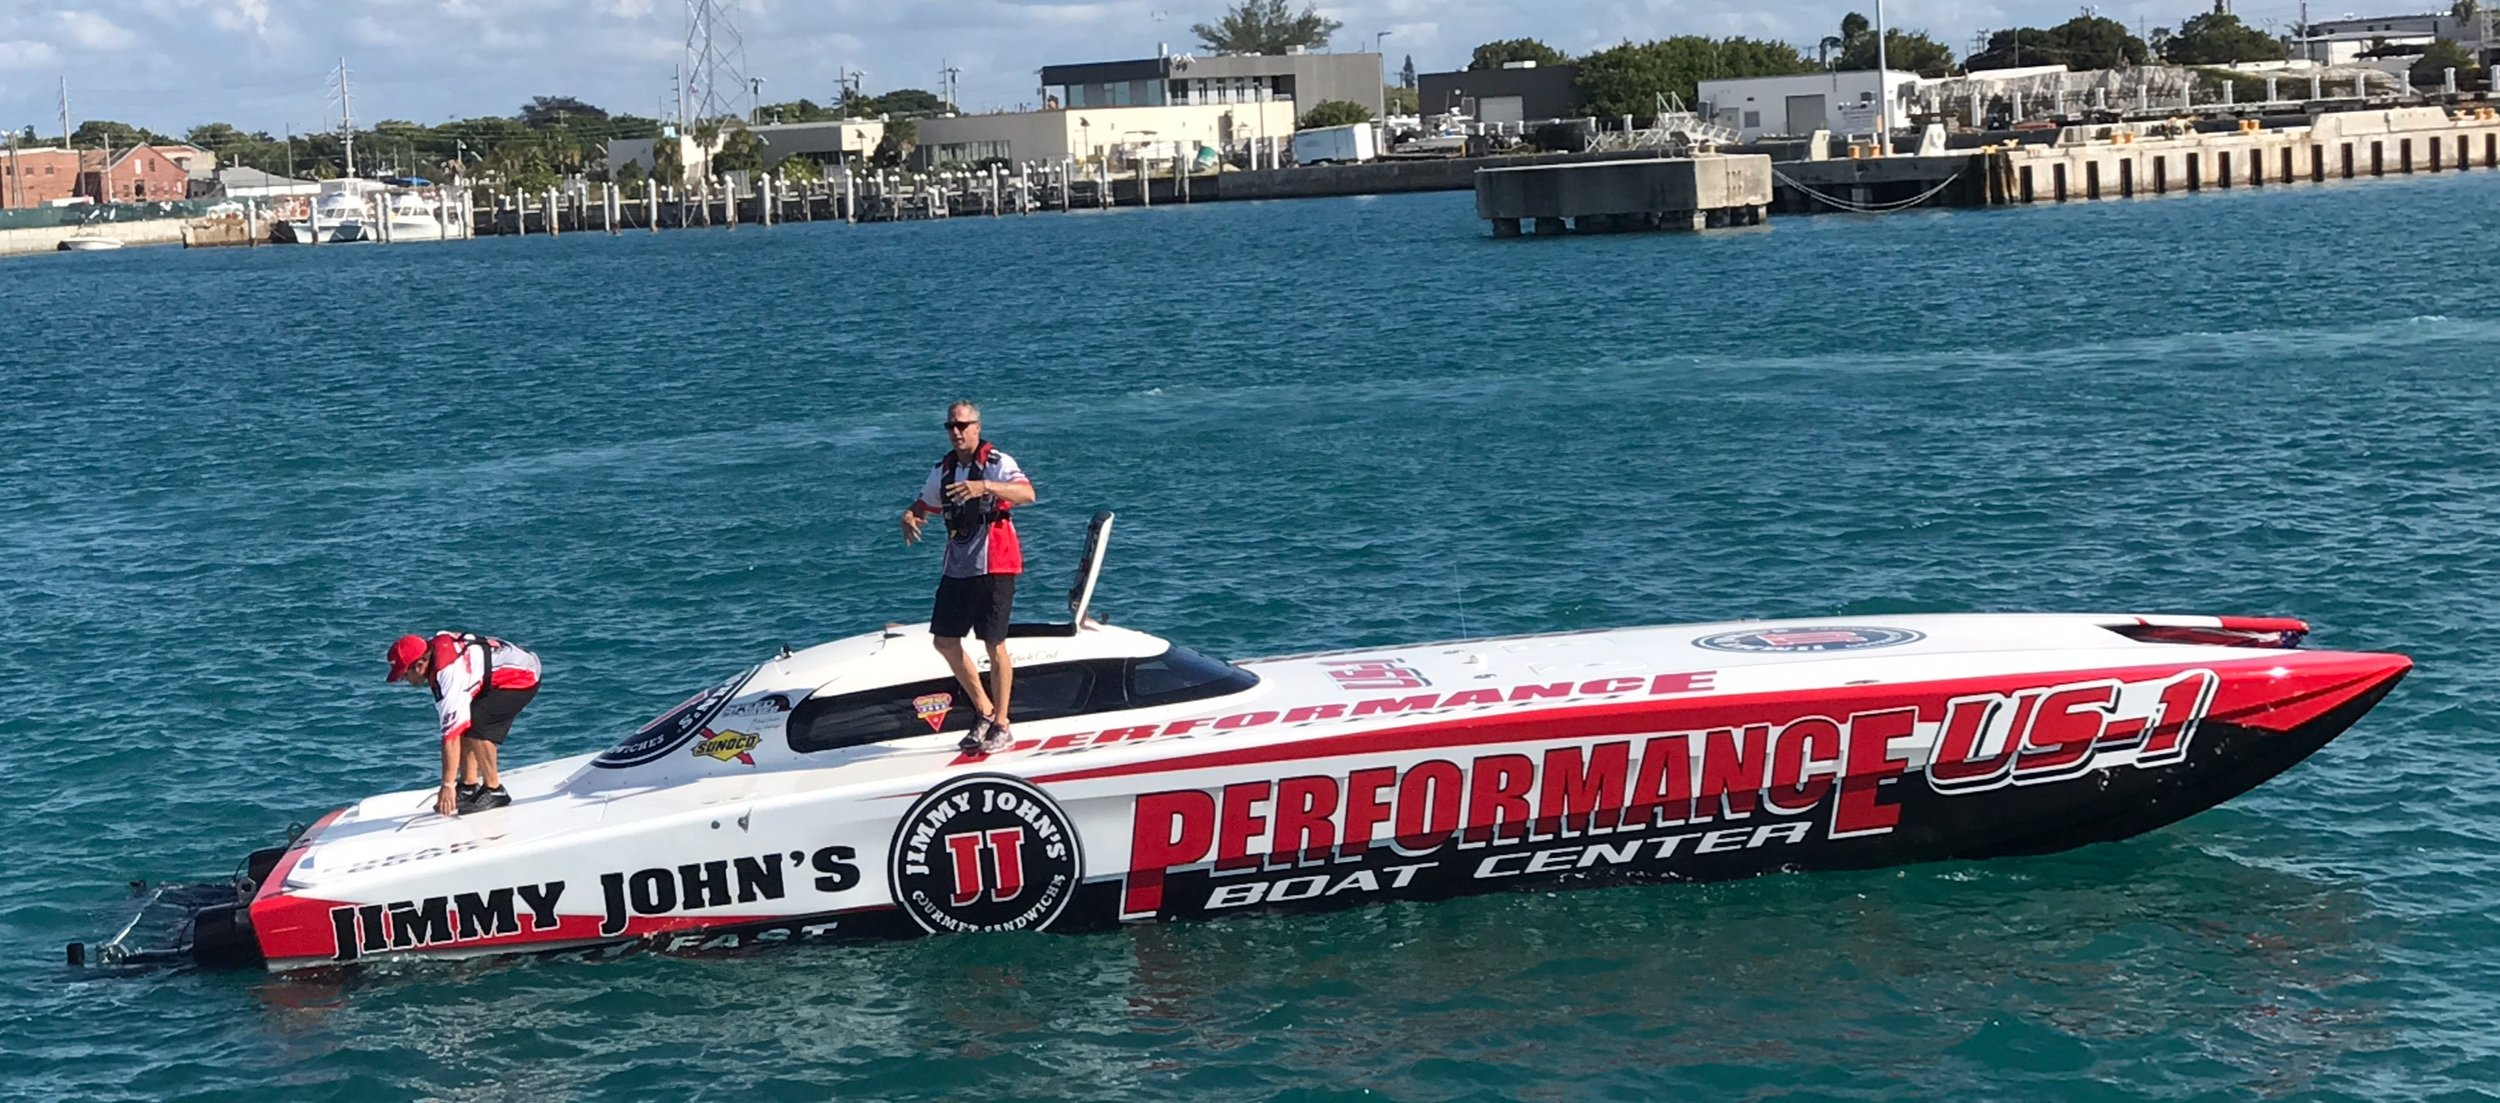 The Performance Boat Center, 388 Skater, with twin 750 HP Sterling Performance Engines.